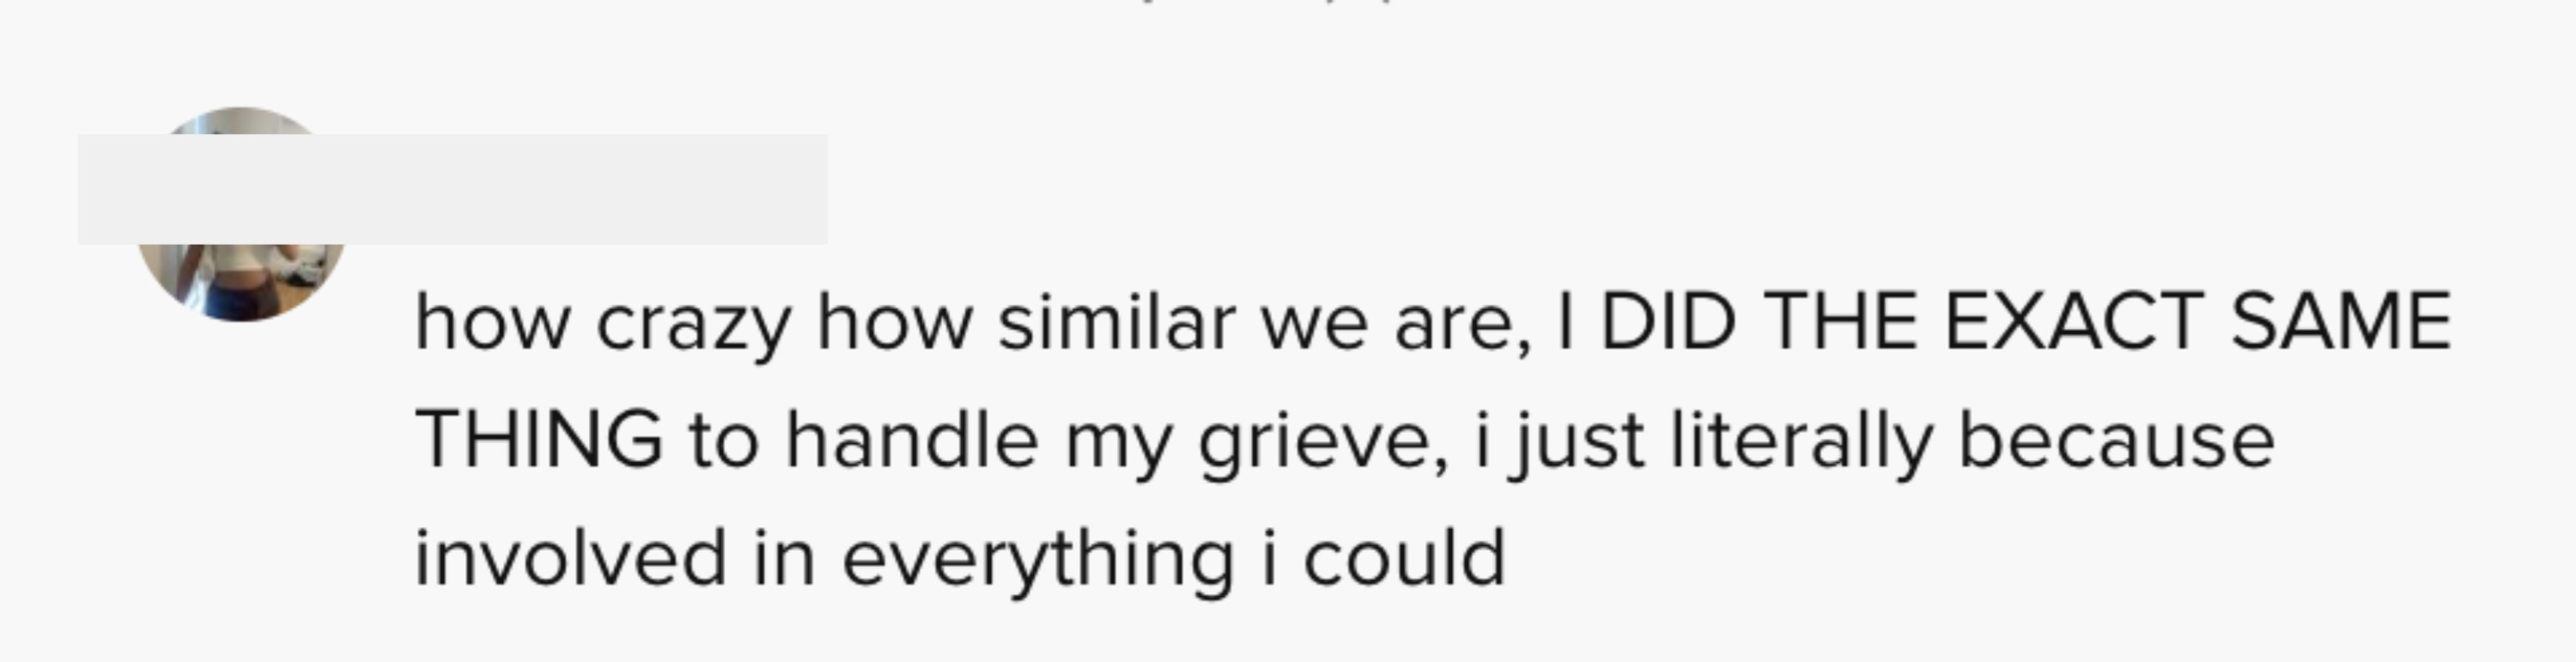 how crazy how similar we are, I DID THE EXACT SAME THING to handle my grief, ijust literally became involved in everything I could